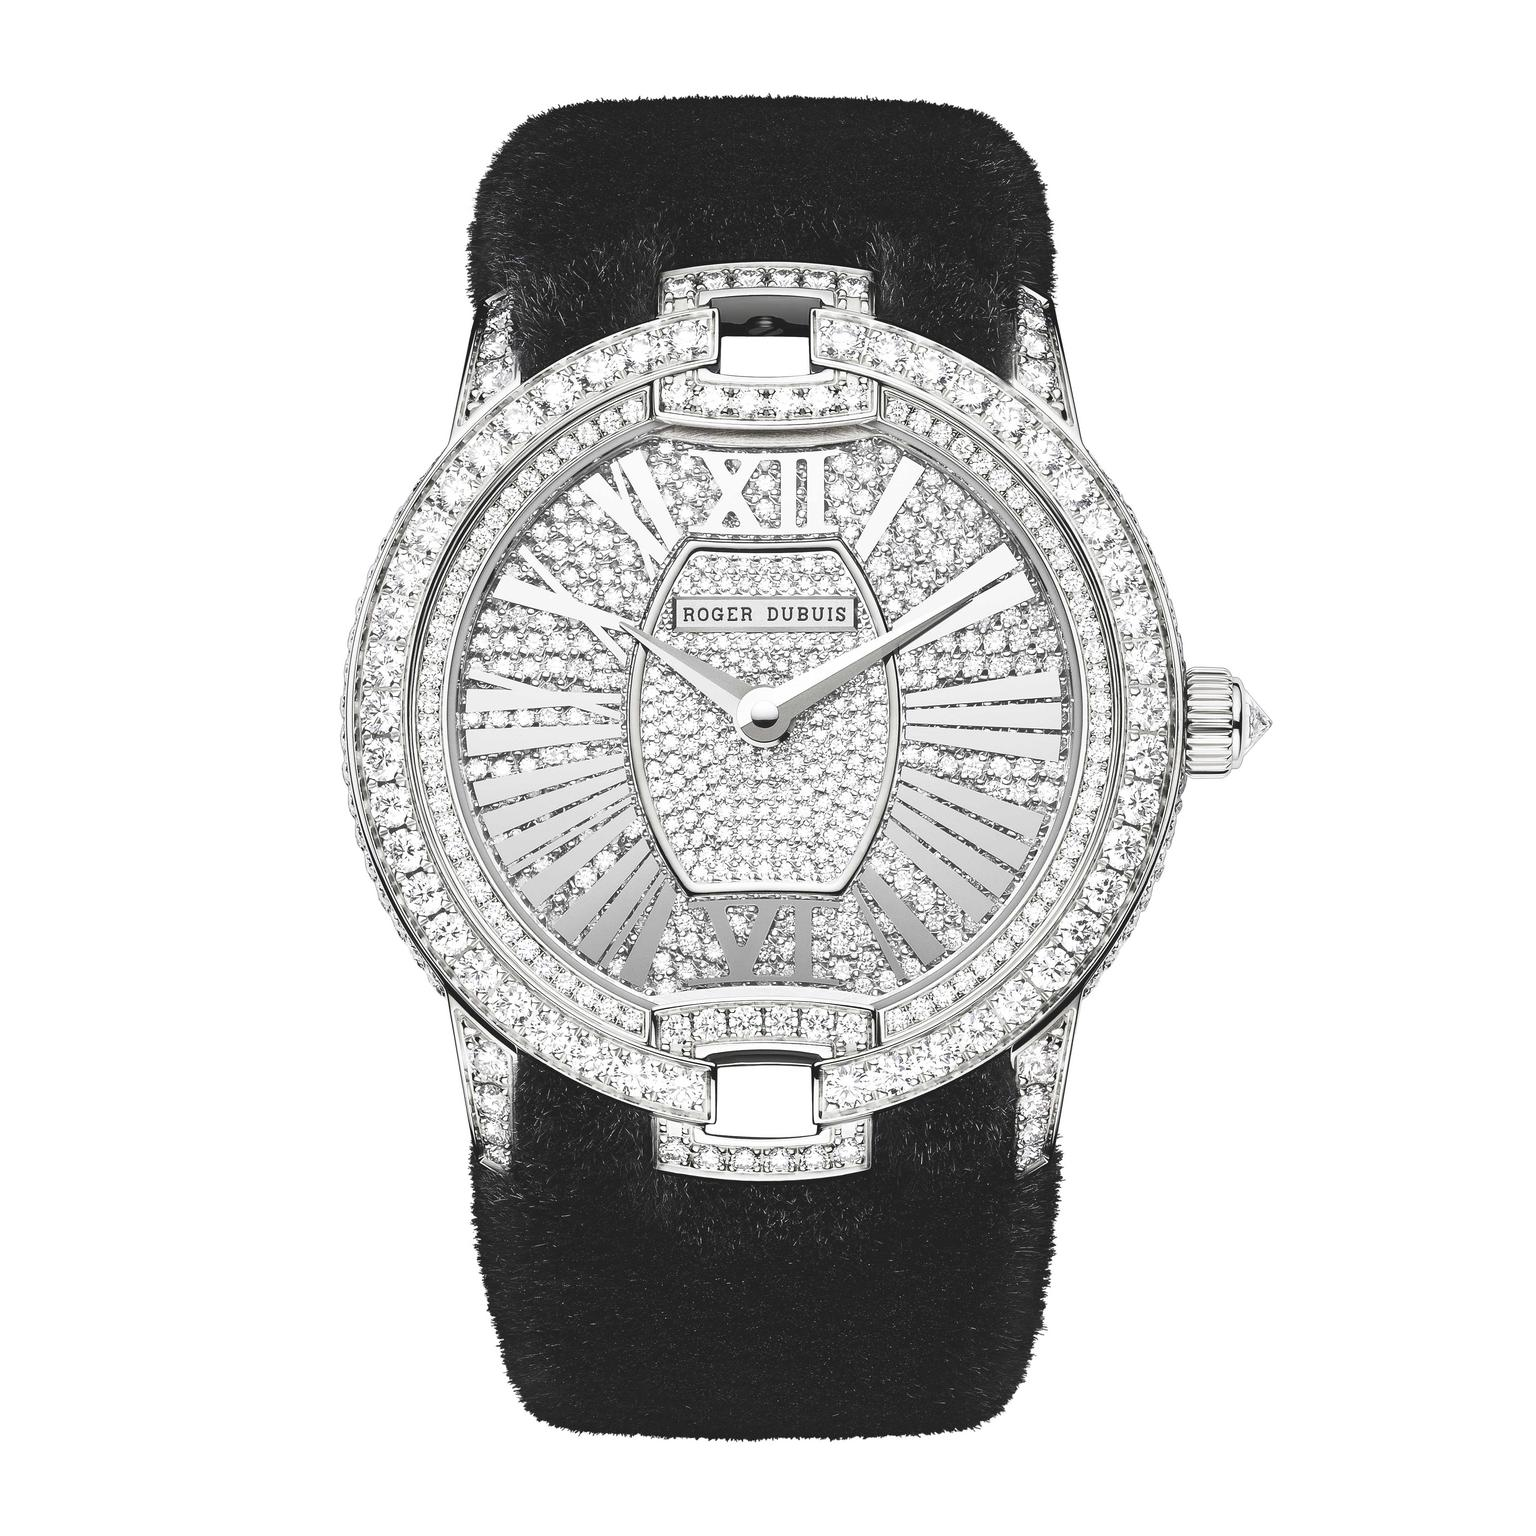 Roger-Dubuis-mink-fur-watch